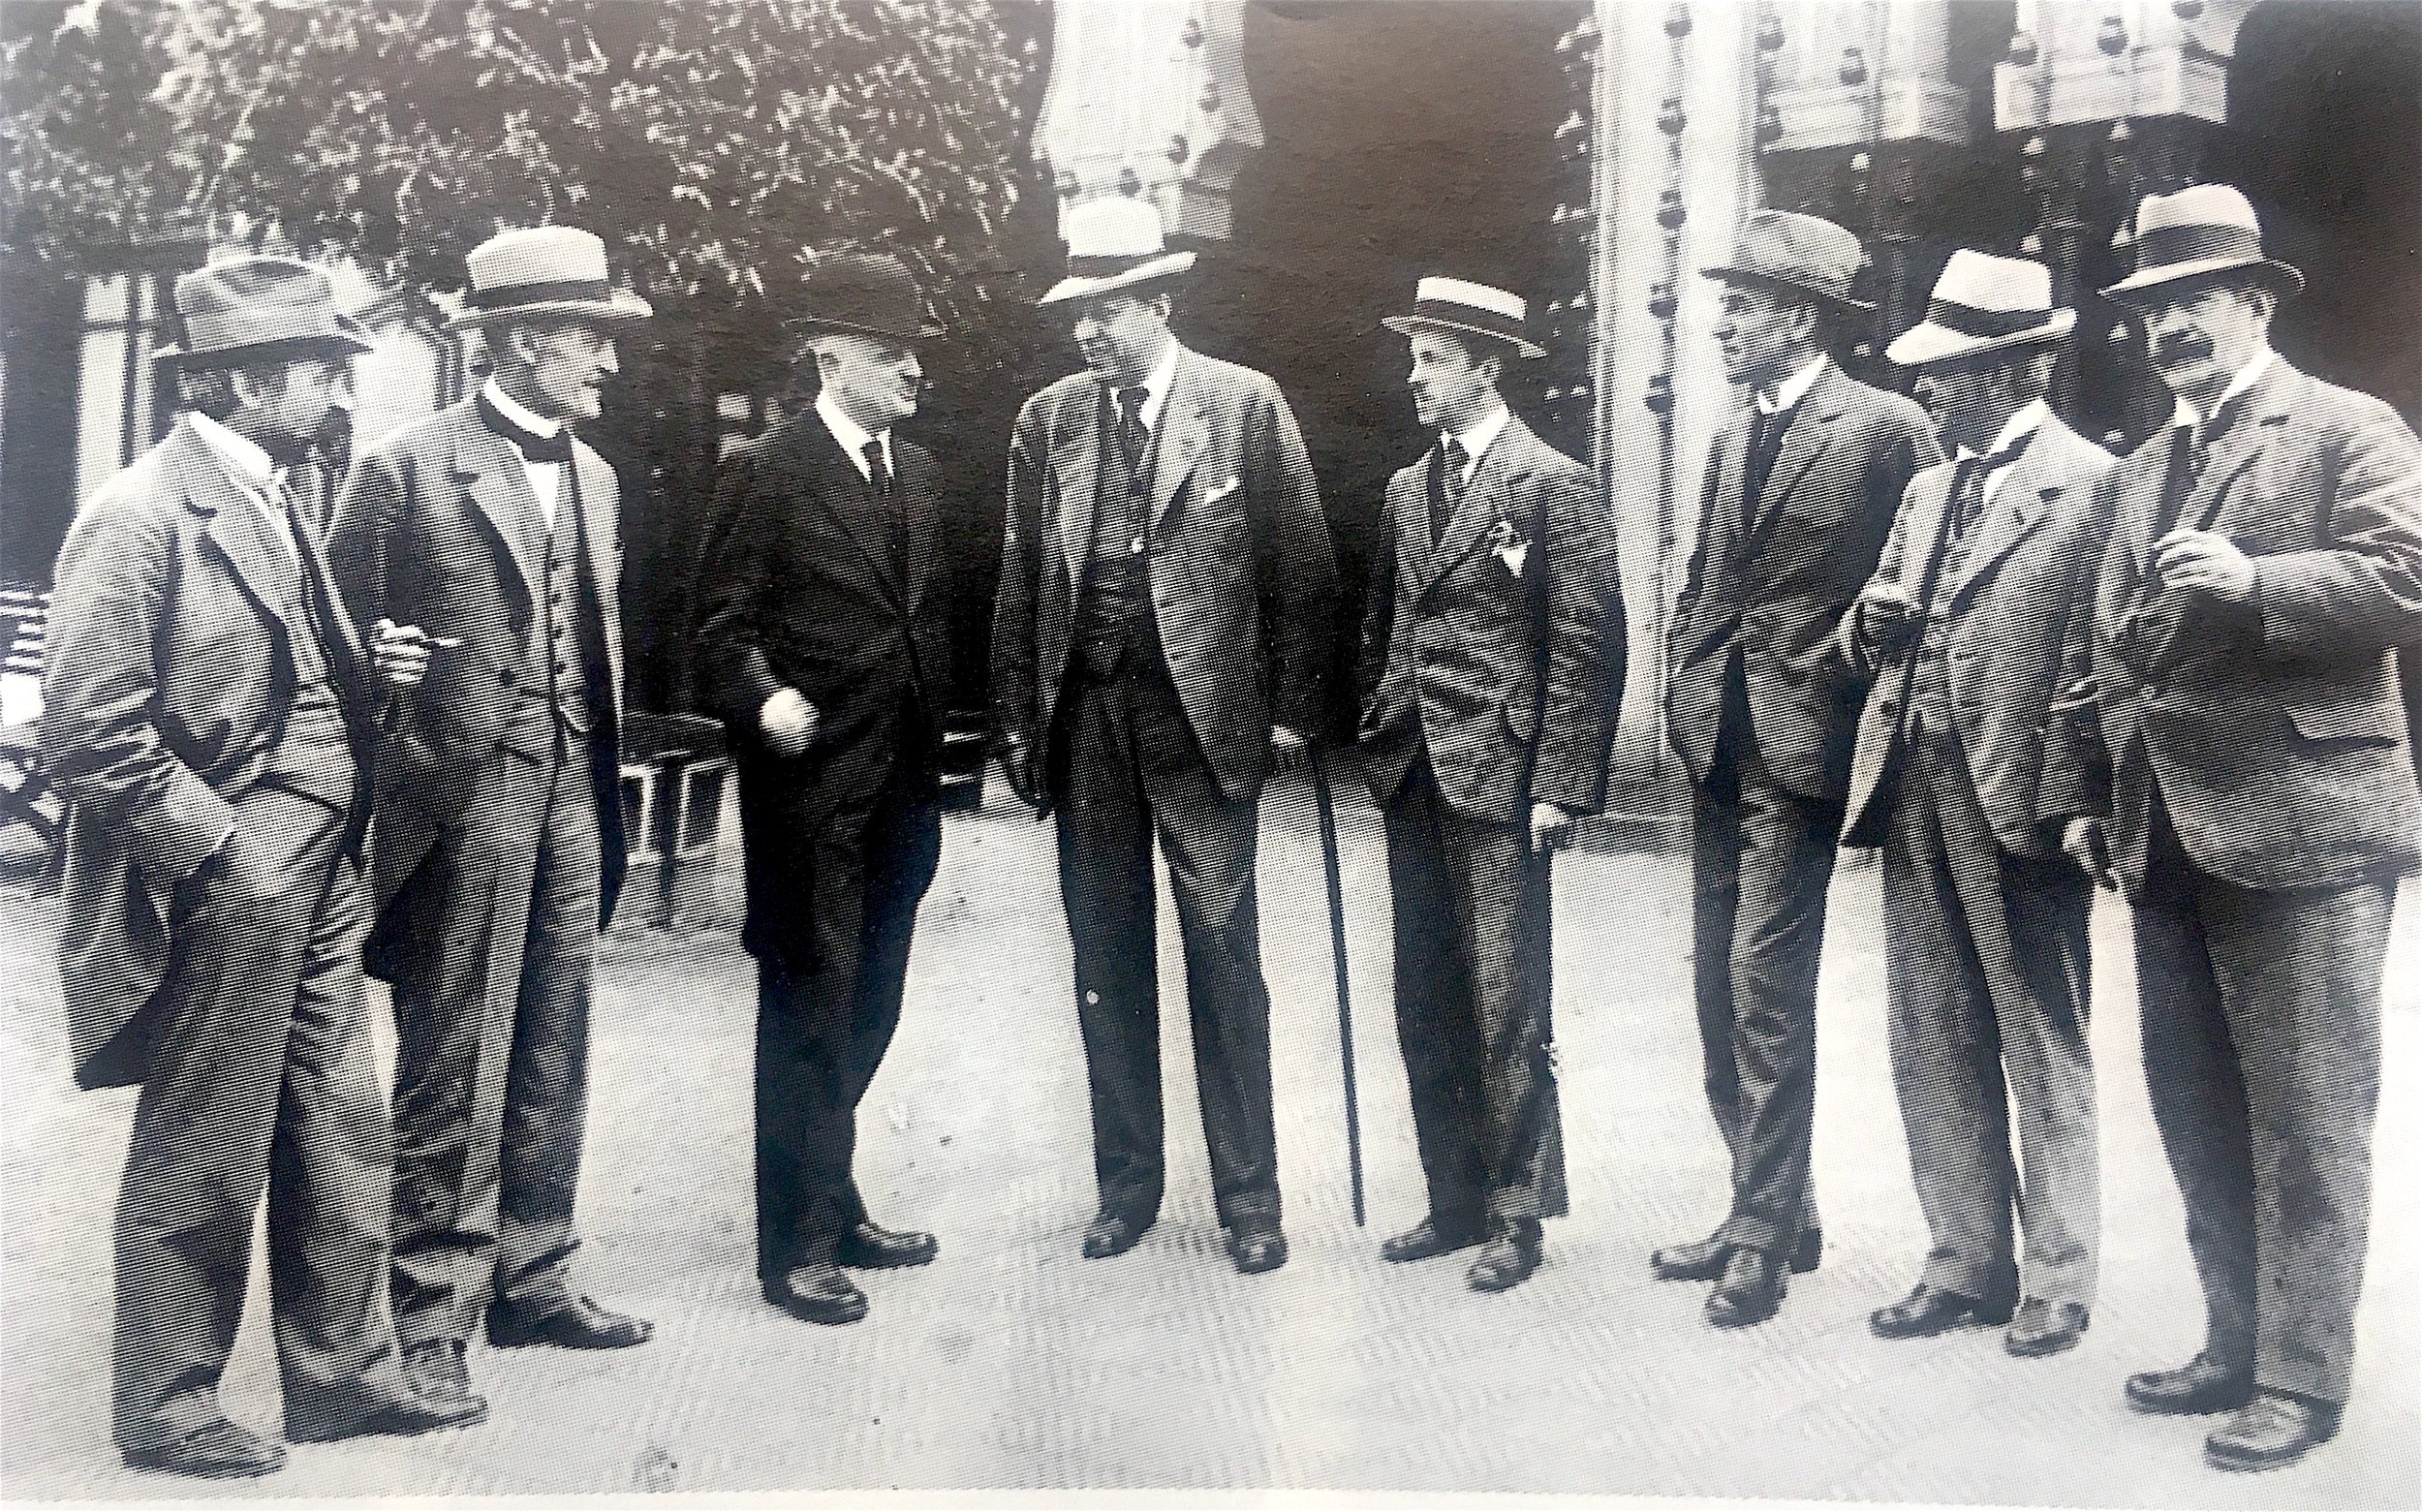 Nordic Music Days 1919 in Copenhagen became the last combined performance of the 'old team' of innovative composers from around 1890 and the century's rst decade. In this photo, taken 20 June 1919 outside Tivoli in Copenhagen, one can see (from left to right) Frederik Schneidler-Petersen (conductor of the Tivoli Orchestra), Robert Kajanus, Jean Sibelius, George Heeberg ( rst conductor of the Royal Orchestra), Erkki Melartin, Willhelm Stenhammar, Carl Nielsen and Johan Halvorsen  Photo from article in Sohlman's Music Encyclopedia, No 4. 1975, written by Bergljot Krohn Bucht.